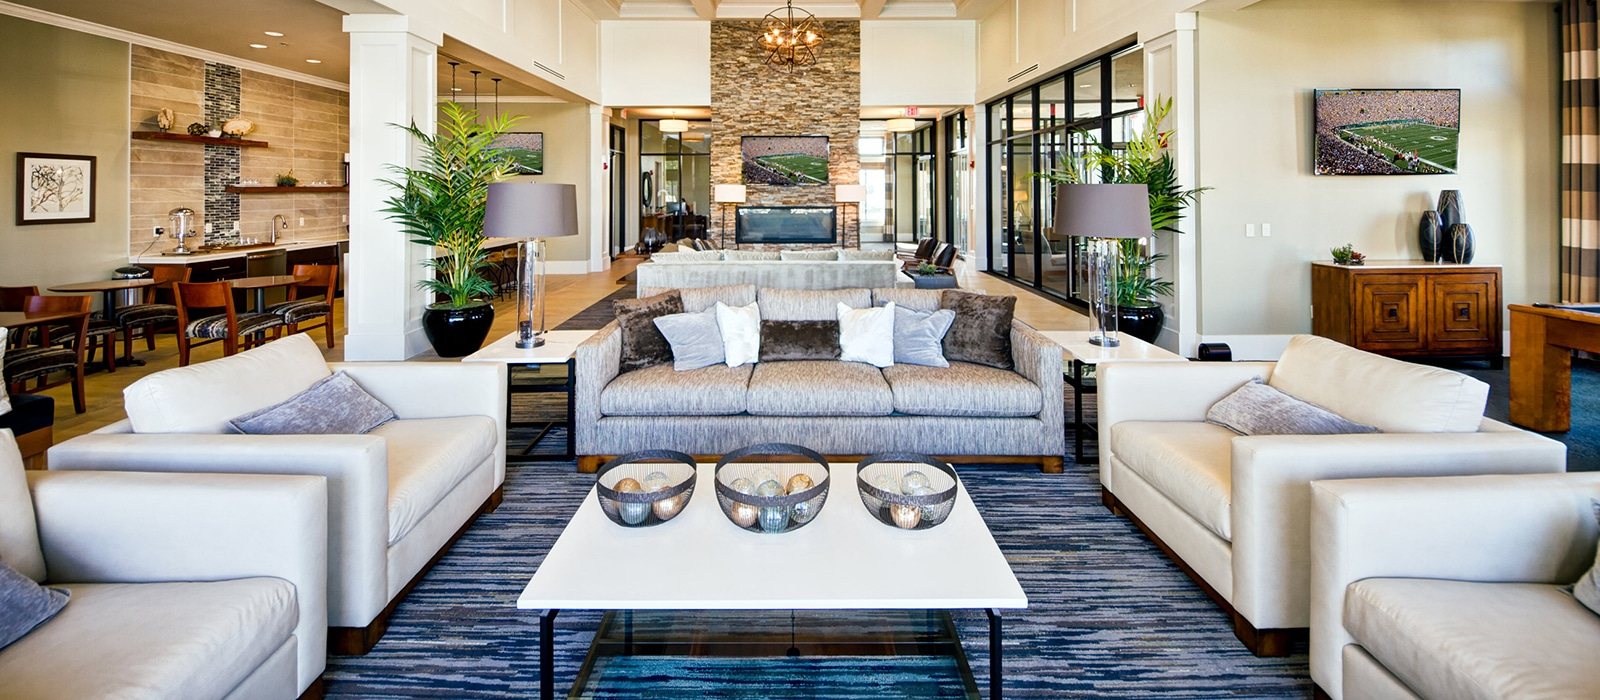 The Yards at Fieldside Village - Kinsley Construction